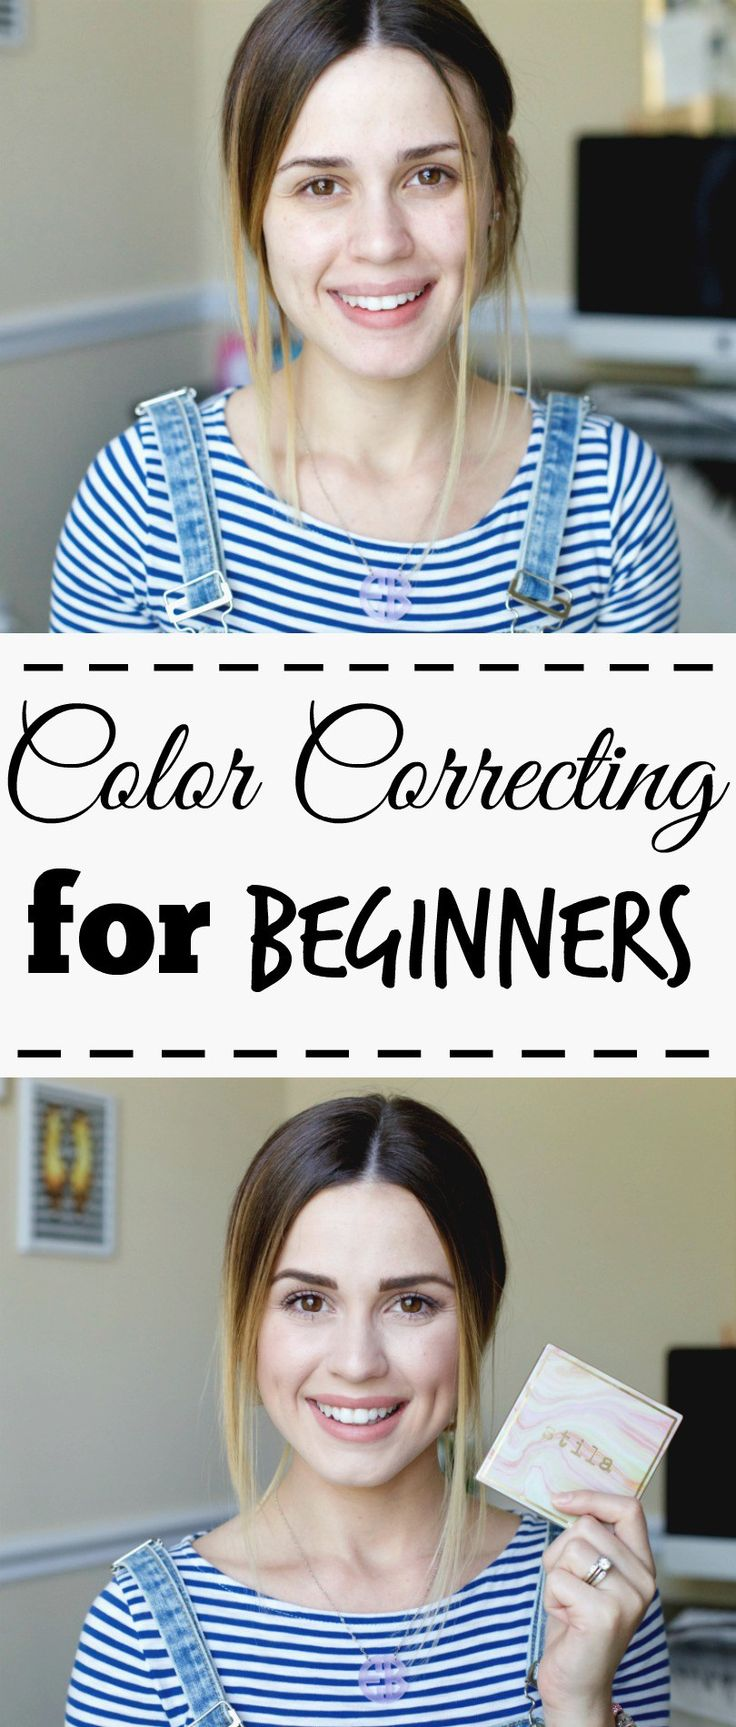 Color Correcting For Beginners | How to color correct | Uptown with Elly Brown